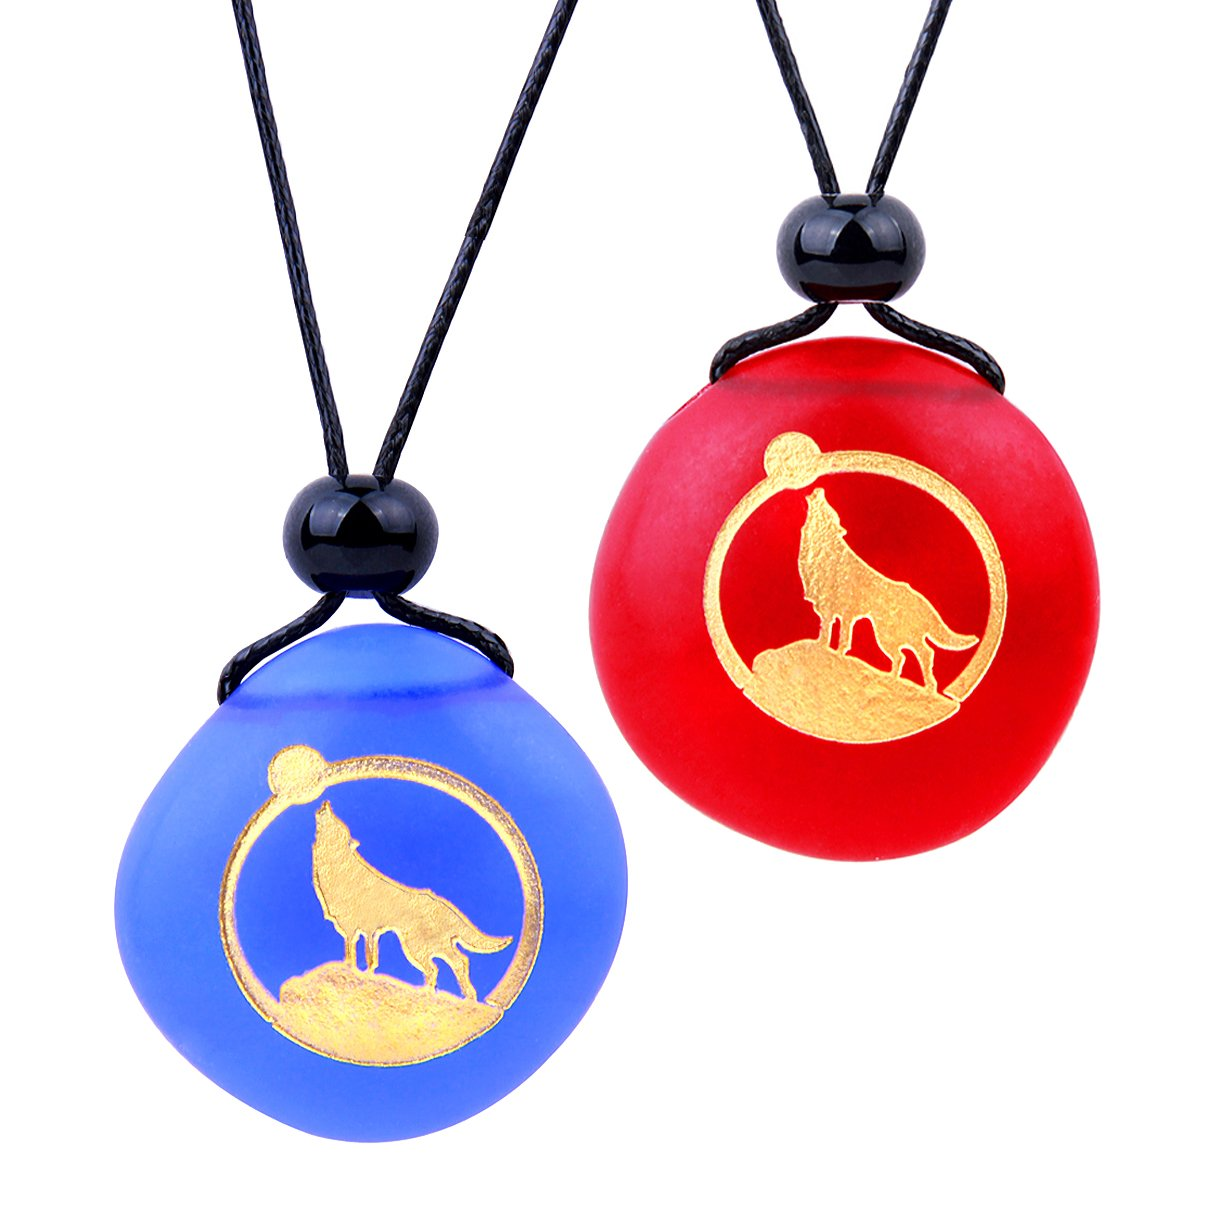 Frosted Sea Glass Stones Howling Wolf Moon Love Couples BFF Set Amulets Royal Blue Red Necklaces